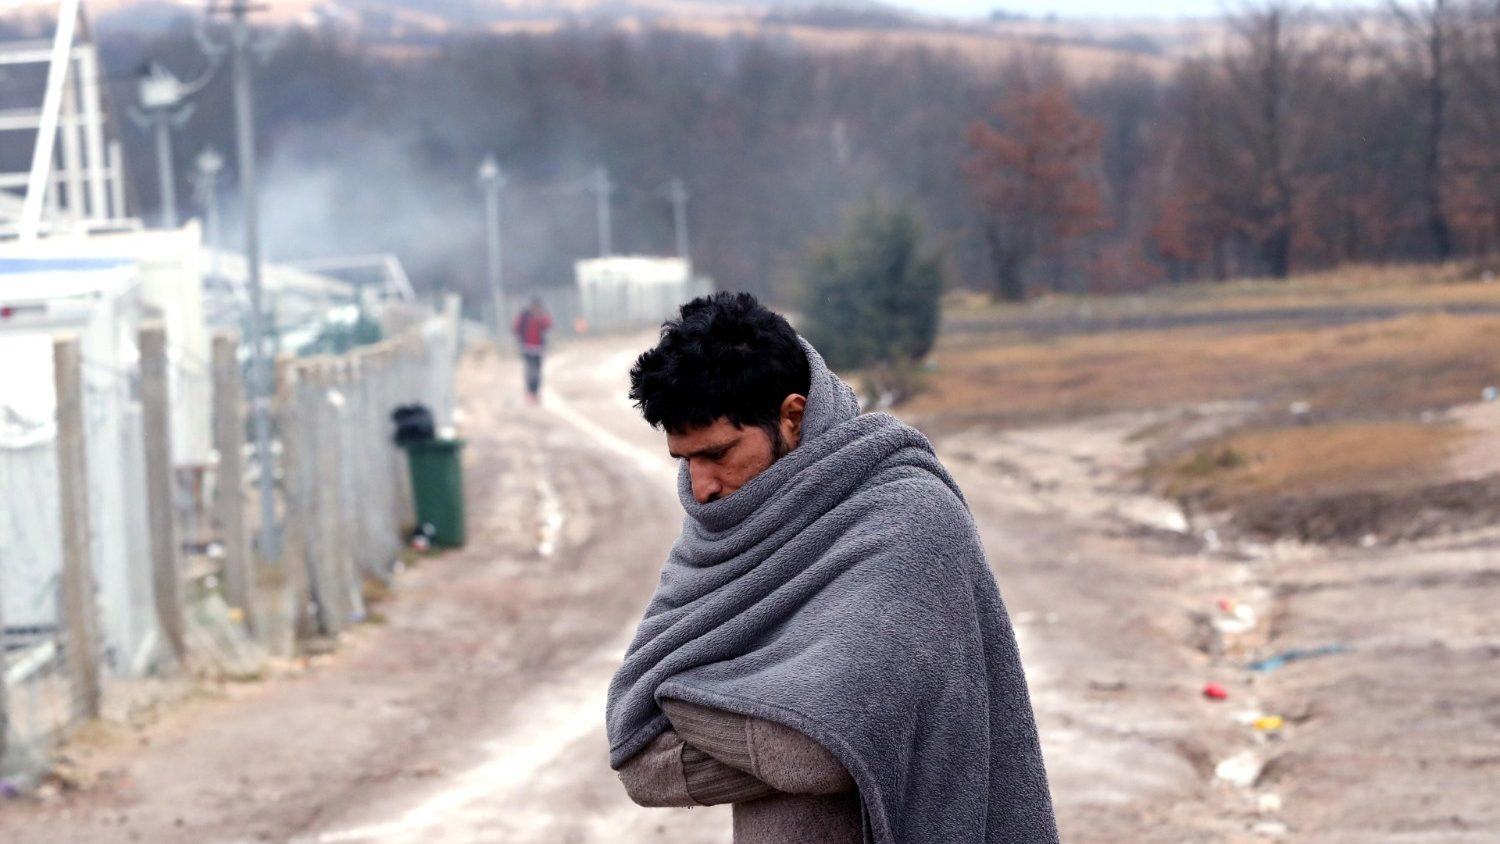 """cq5dam.thumbnail.cropped.1500.844 Pope Francis's new encyclical, Fratelli tutti, speaks directly to the """"joys and the hopes, the griefs and the anxieties"""" of migrants, refugees, and indeed all displaced and marginalized people."""""""